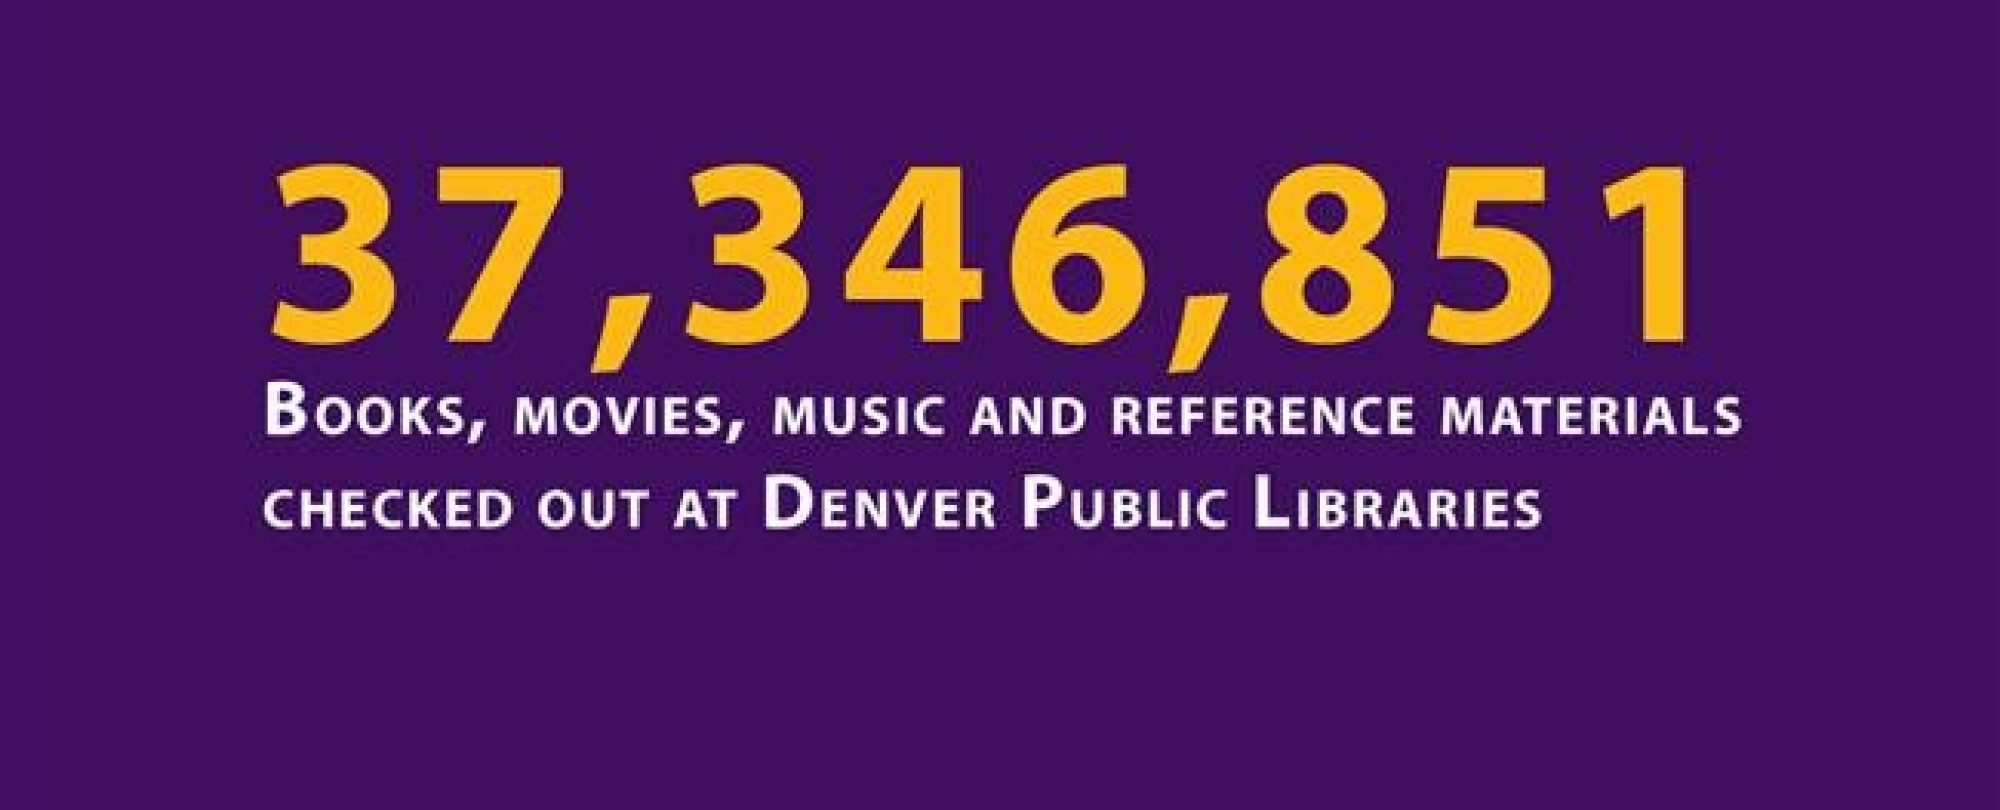 37,346,851 books, movies, music, and reference materials checked out at Denver public libraries.